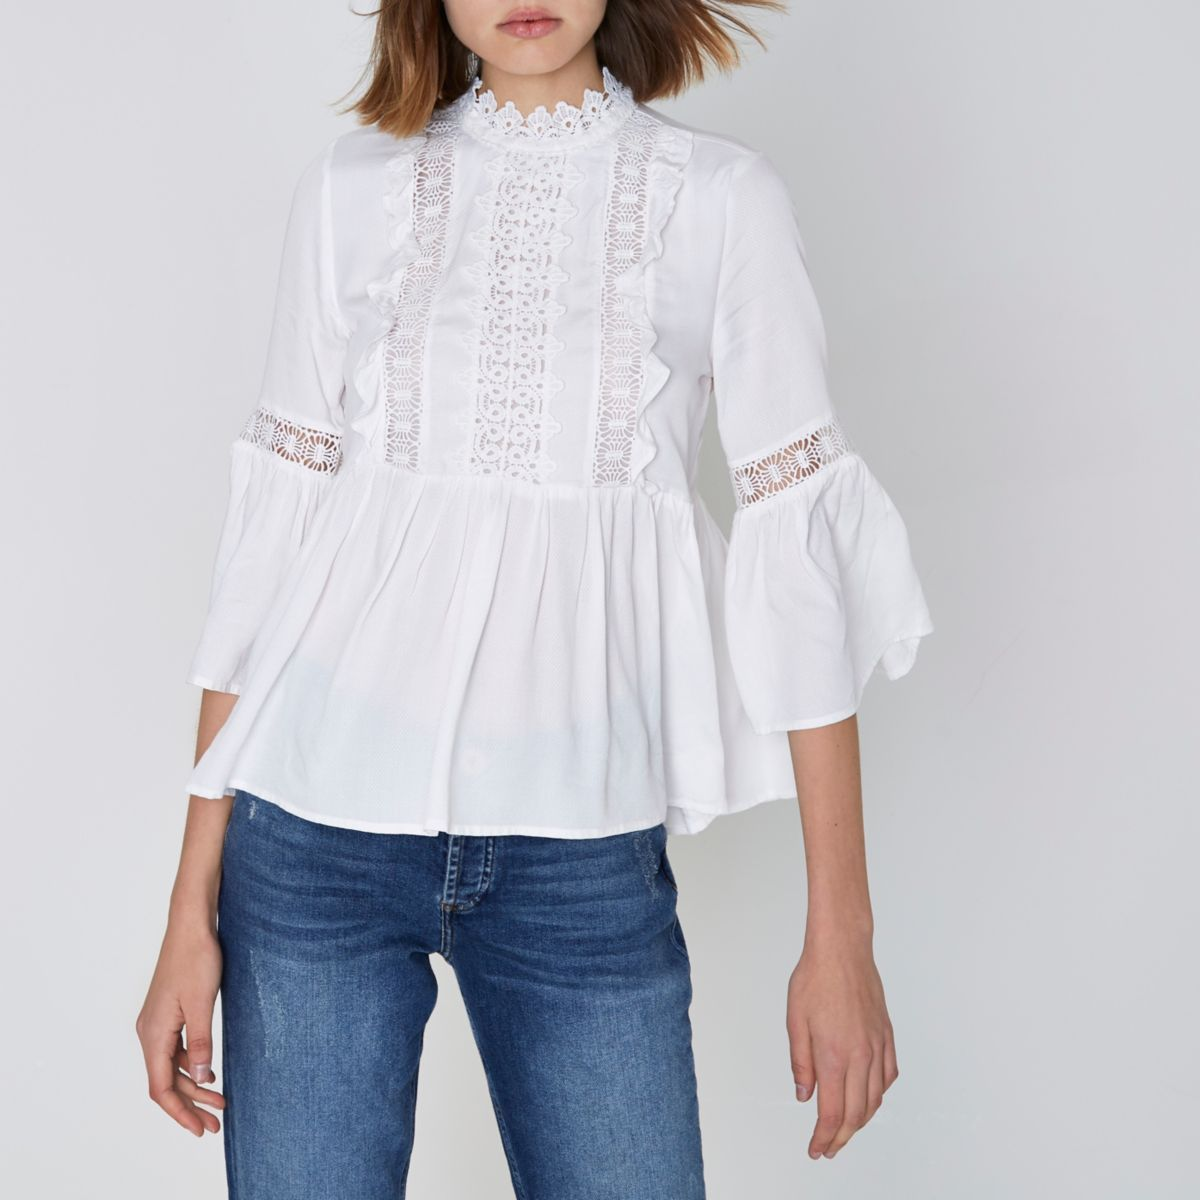 8a585c76718d20 White embroidered high neck smock top | Clothes | Tops, Summer tops ...